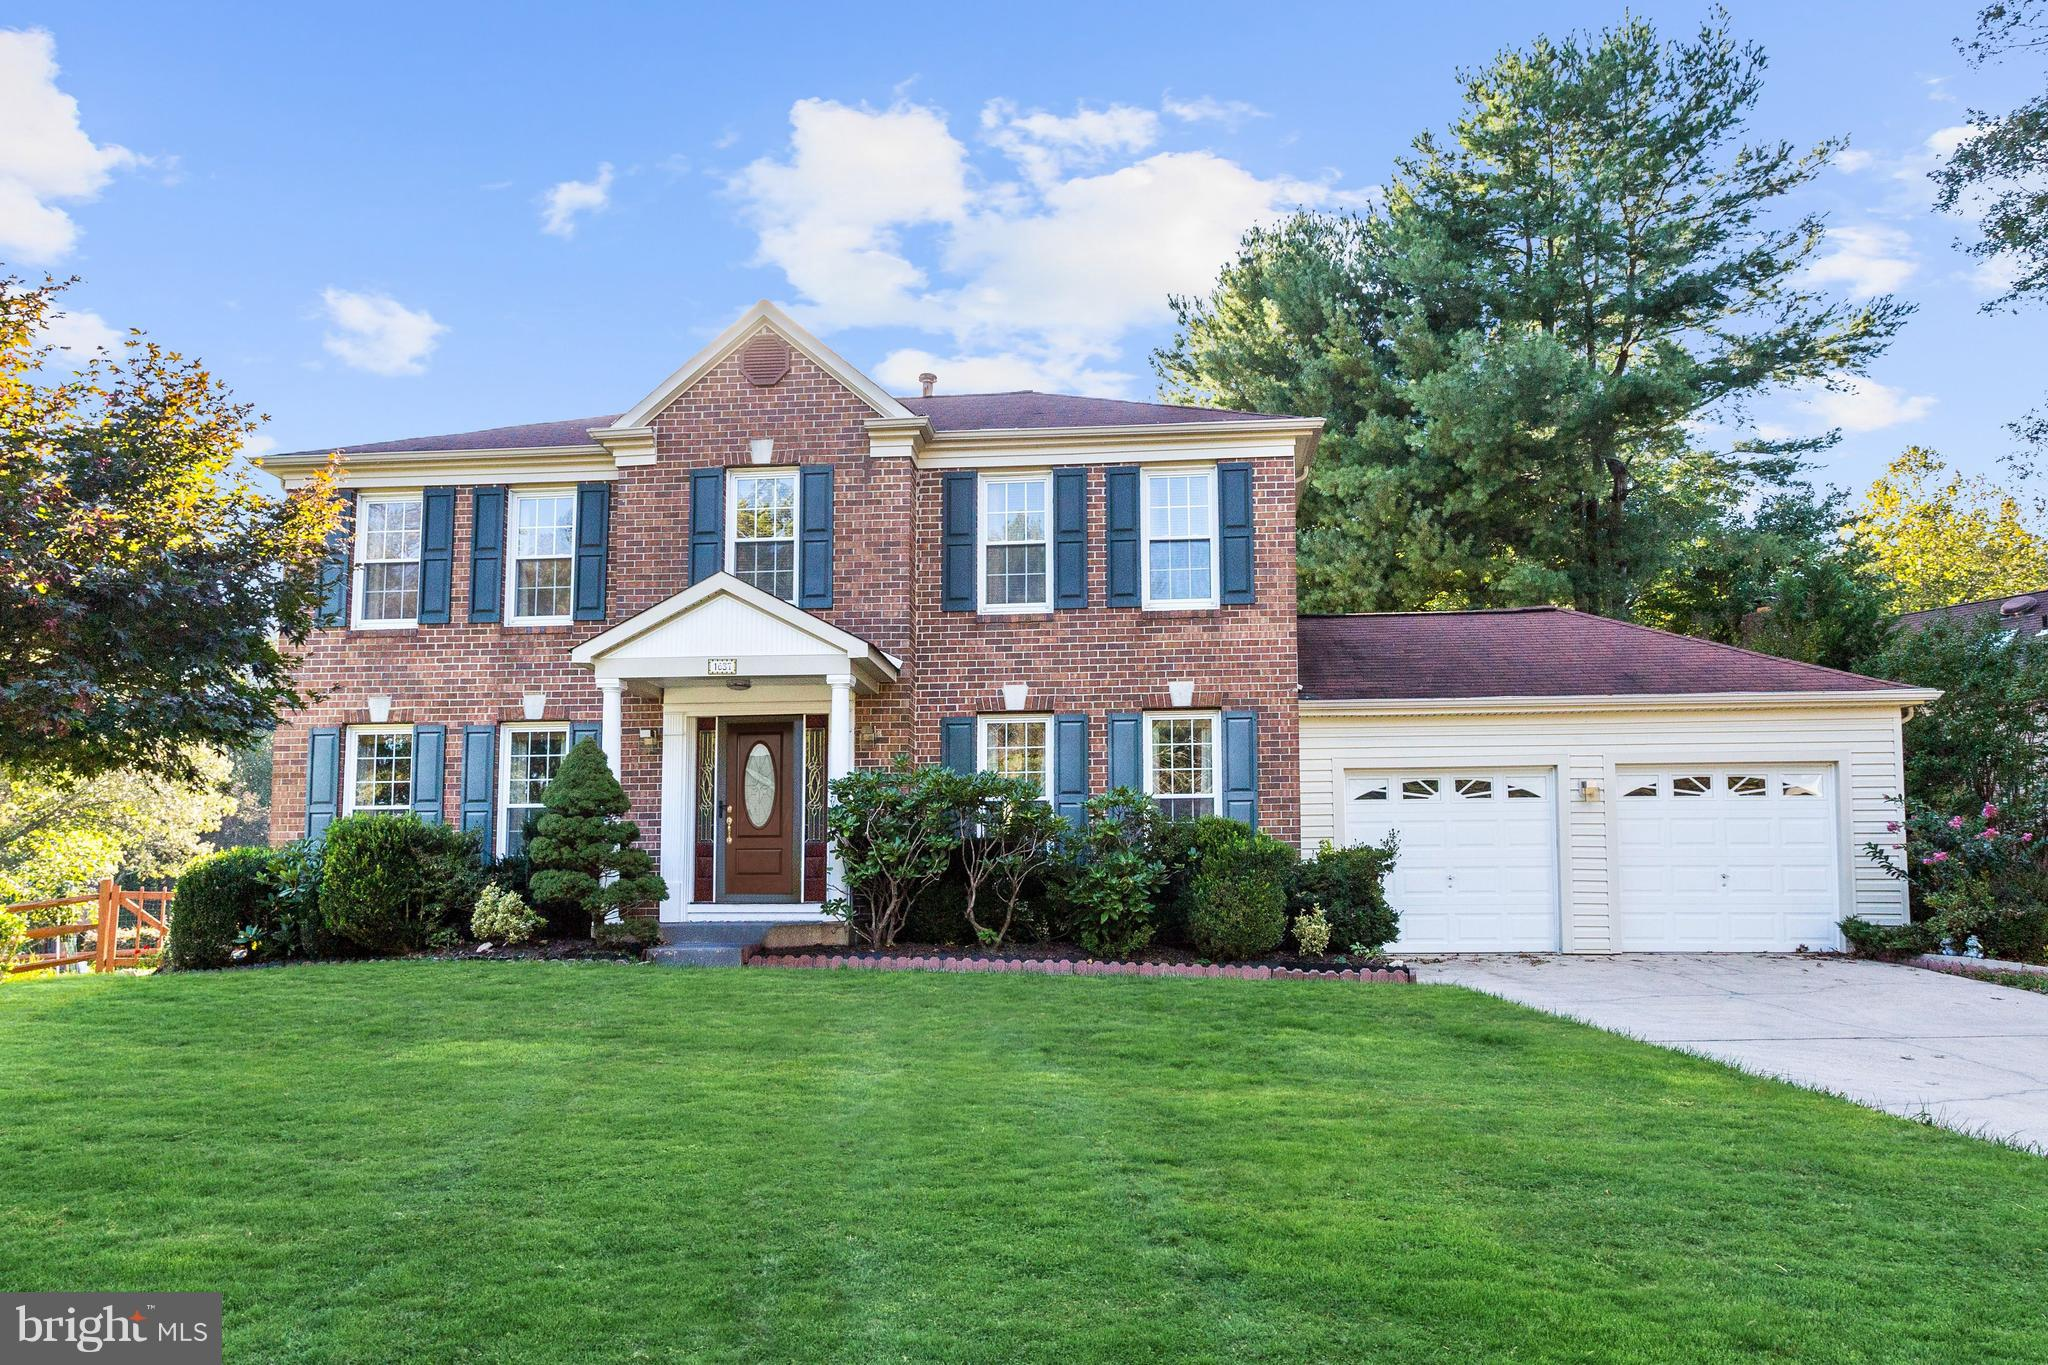 1637 FEATHERWOOD STREET, SILVER SPRING, MD 20904